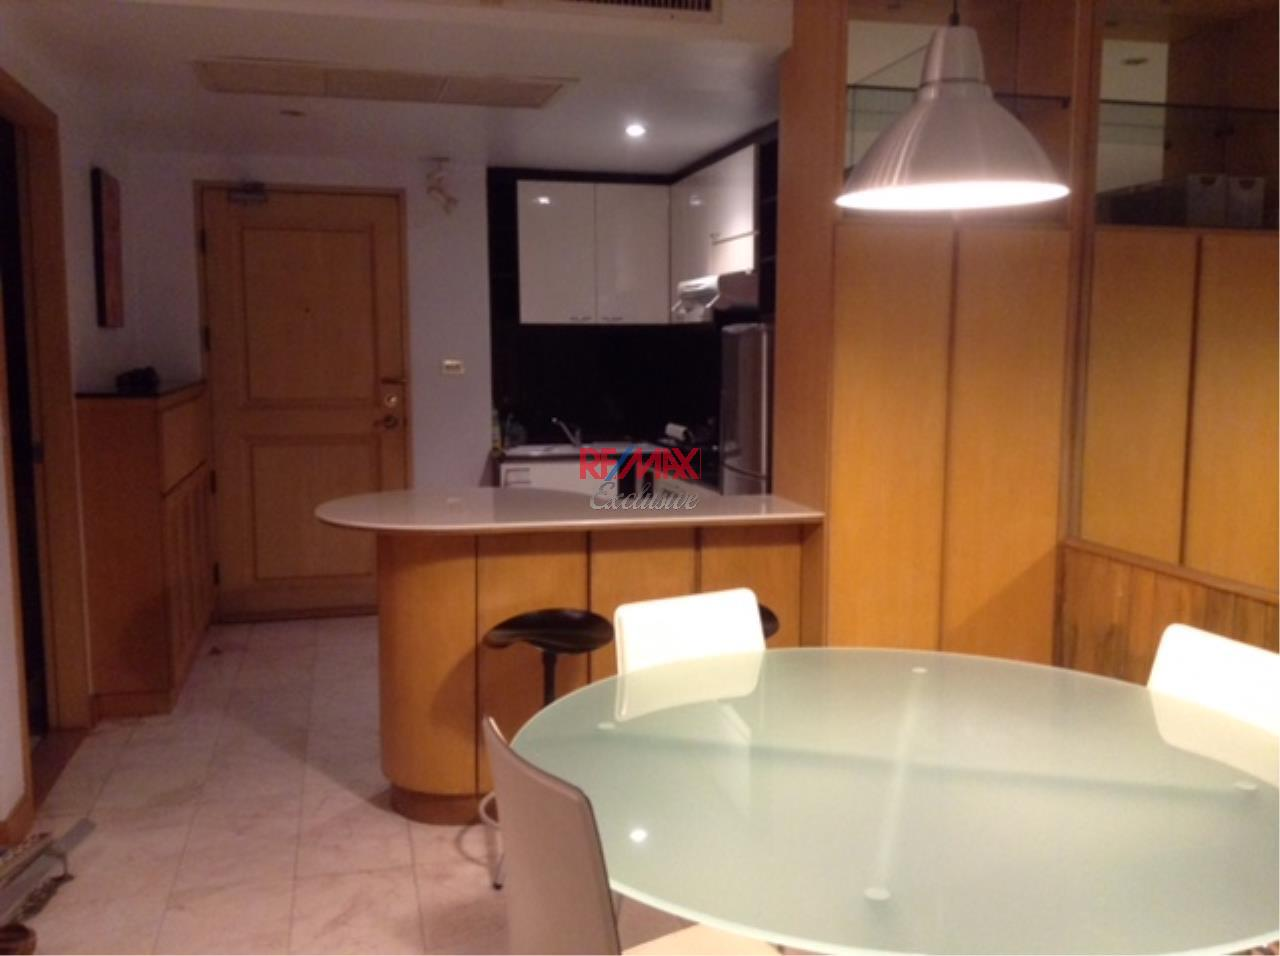 RE/MAX Exclusive Agency's Spacious 1 bedroom 86.5 sqm for sale or rent in Lake avenue 2